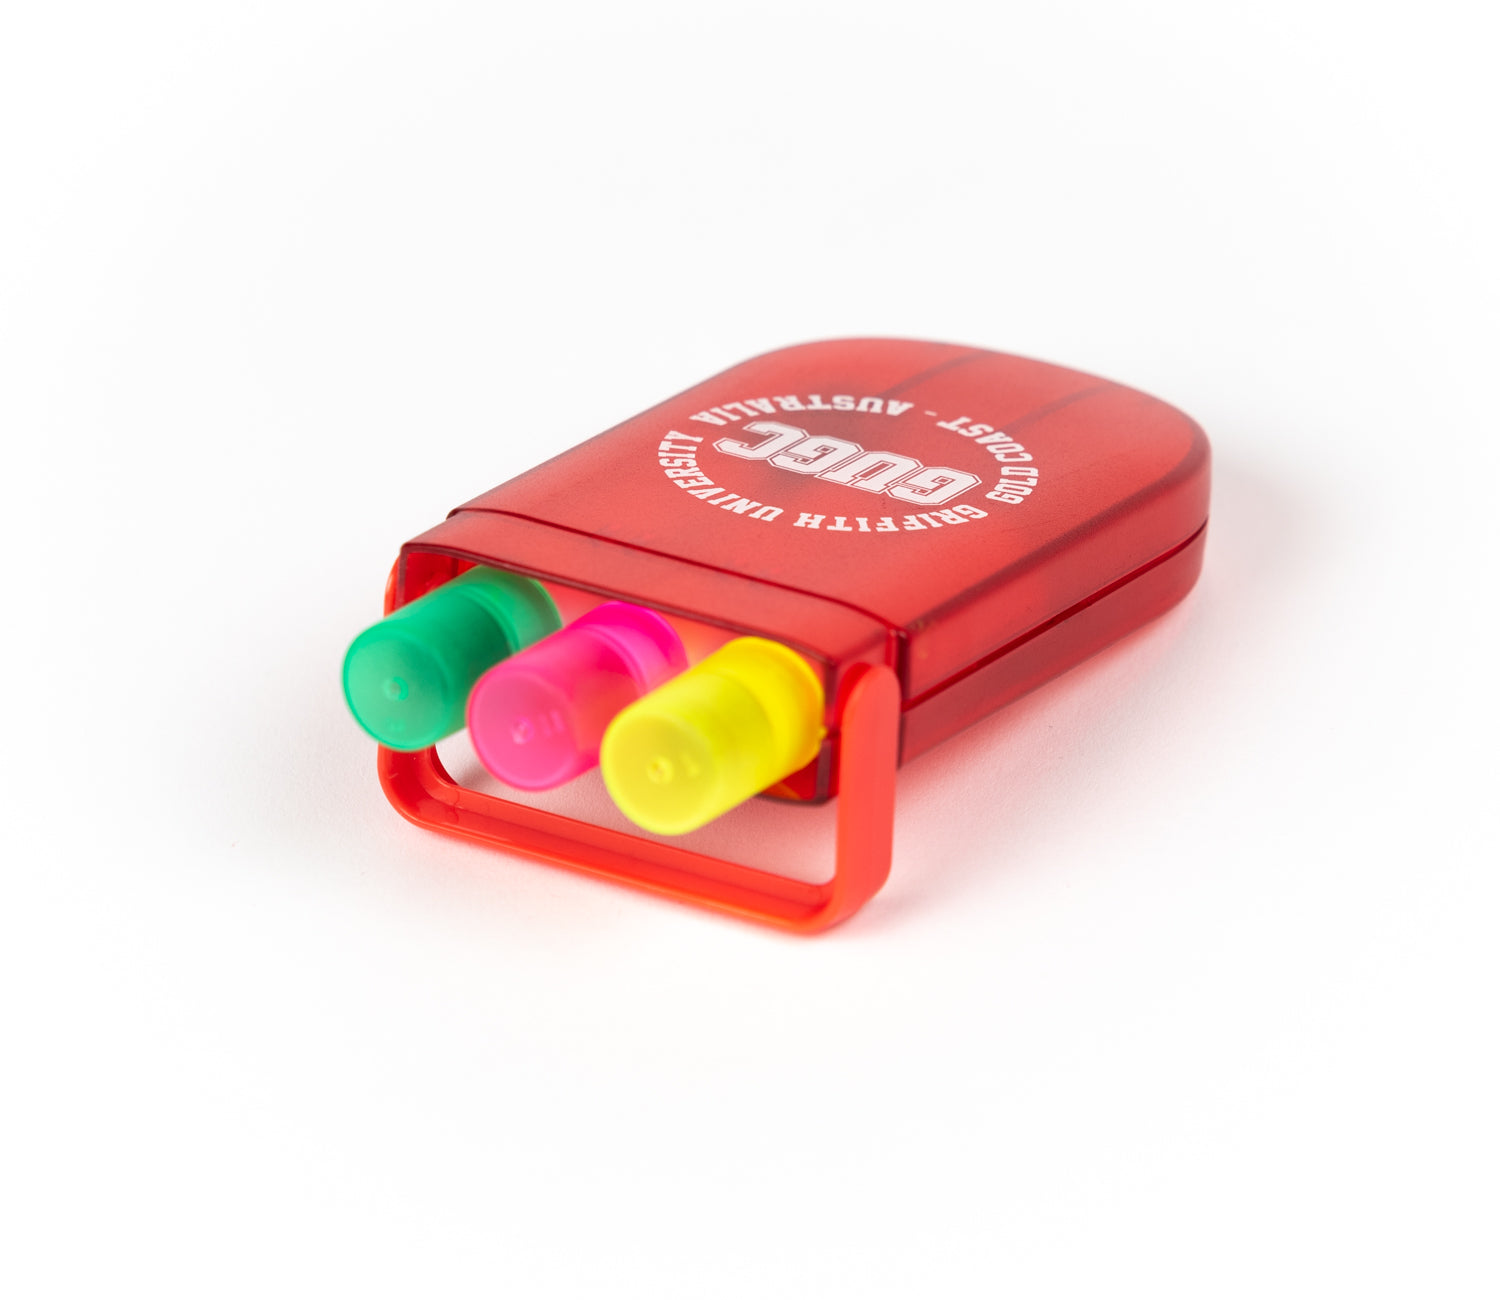 Griffith highlighters